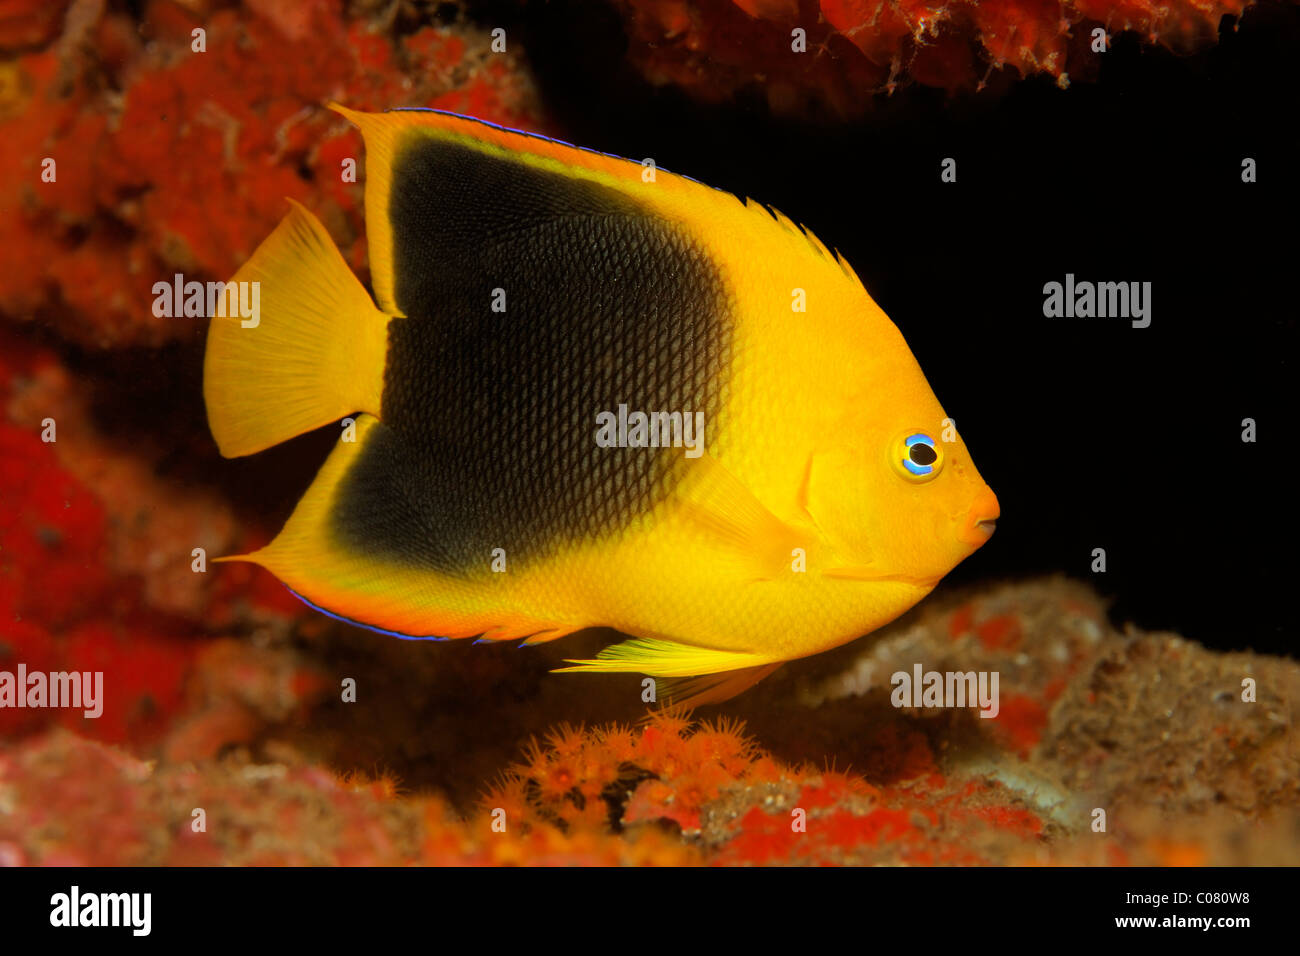 Rock beauty (Holacanthus tricolor), in hideaway, transitional form between juvenile and adult fish, Saint Lucia - Stock Image